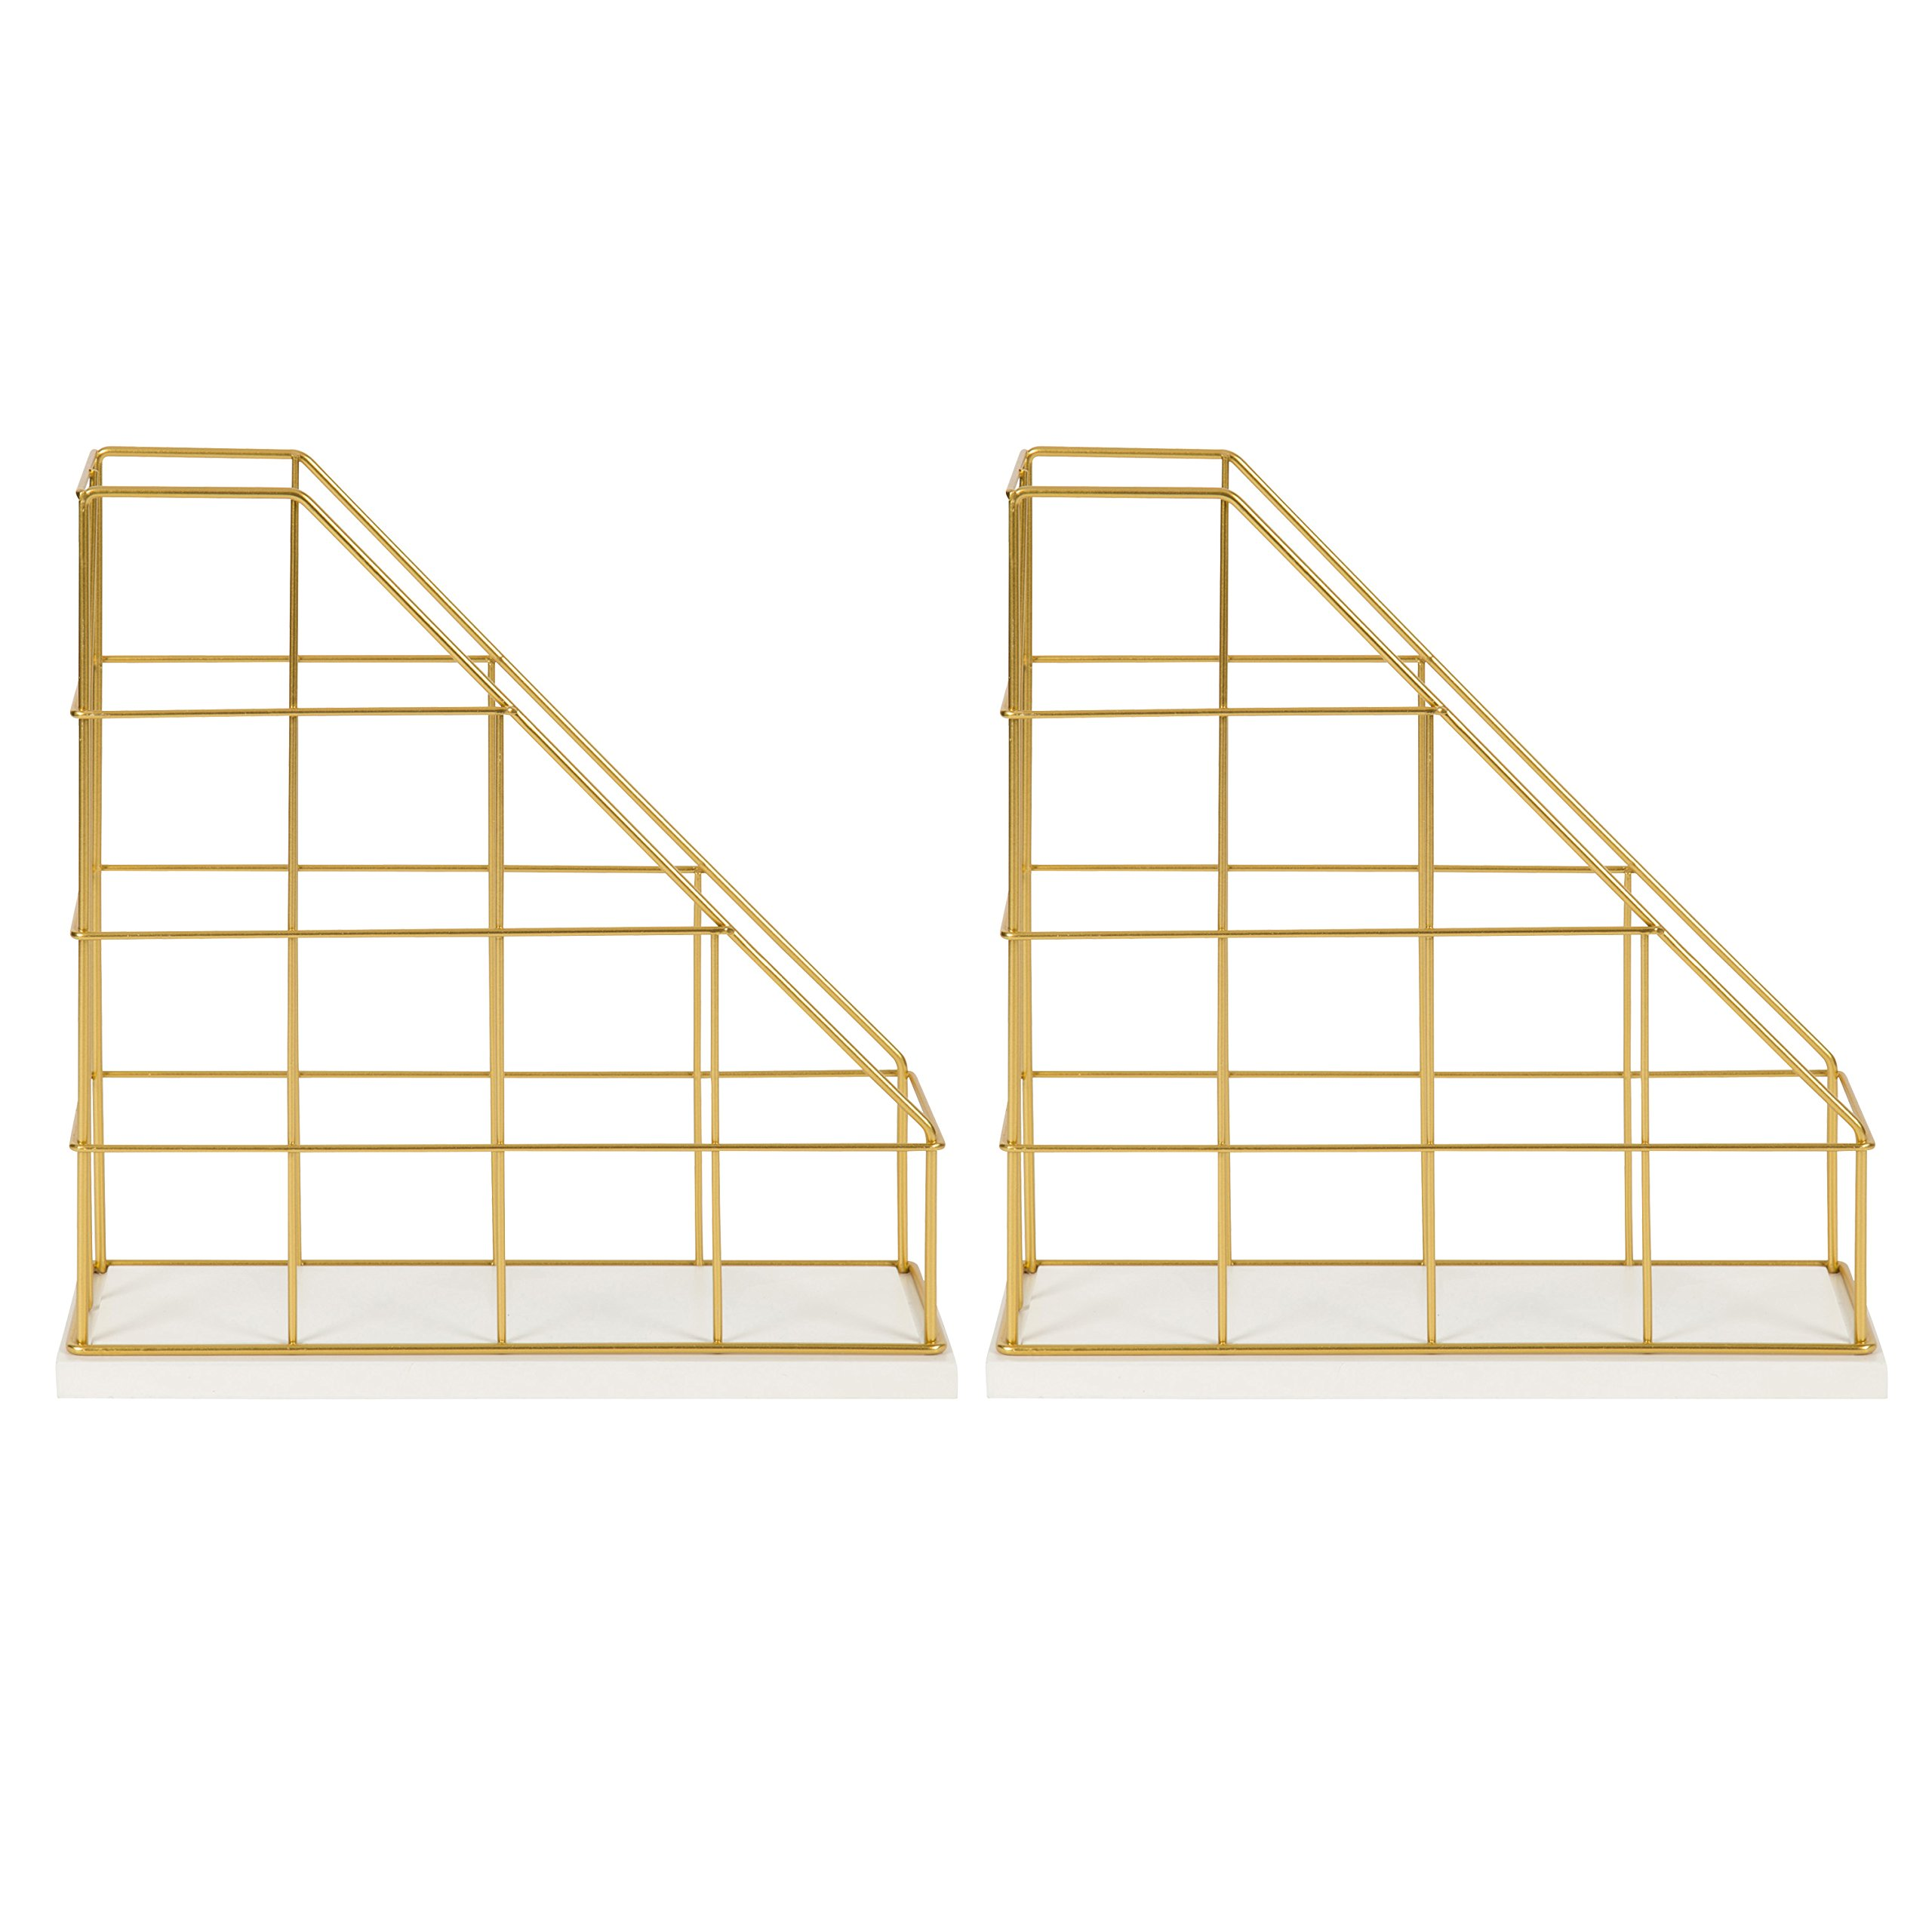 Kate and Laurel Benbrook Metal and Wood Magazine File Holder Desk Organizers, Set of 2, White and Gold by Kate and Laurel (Image #2)